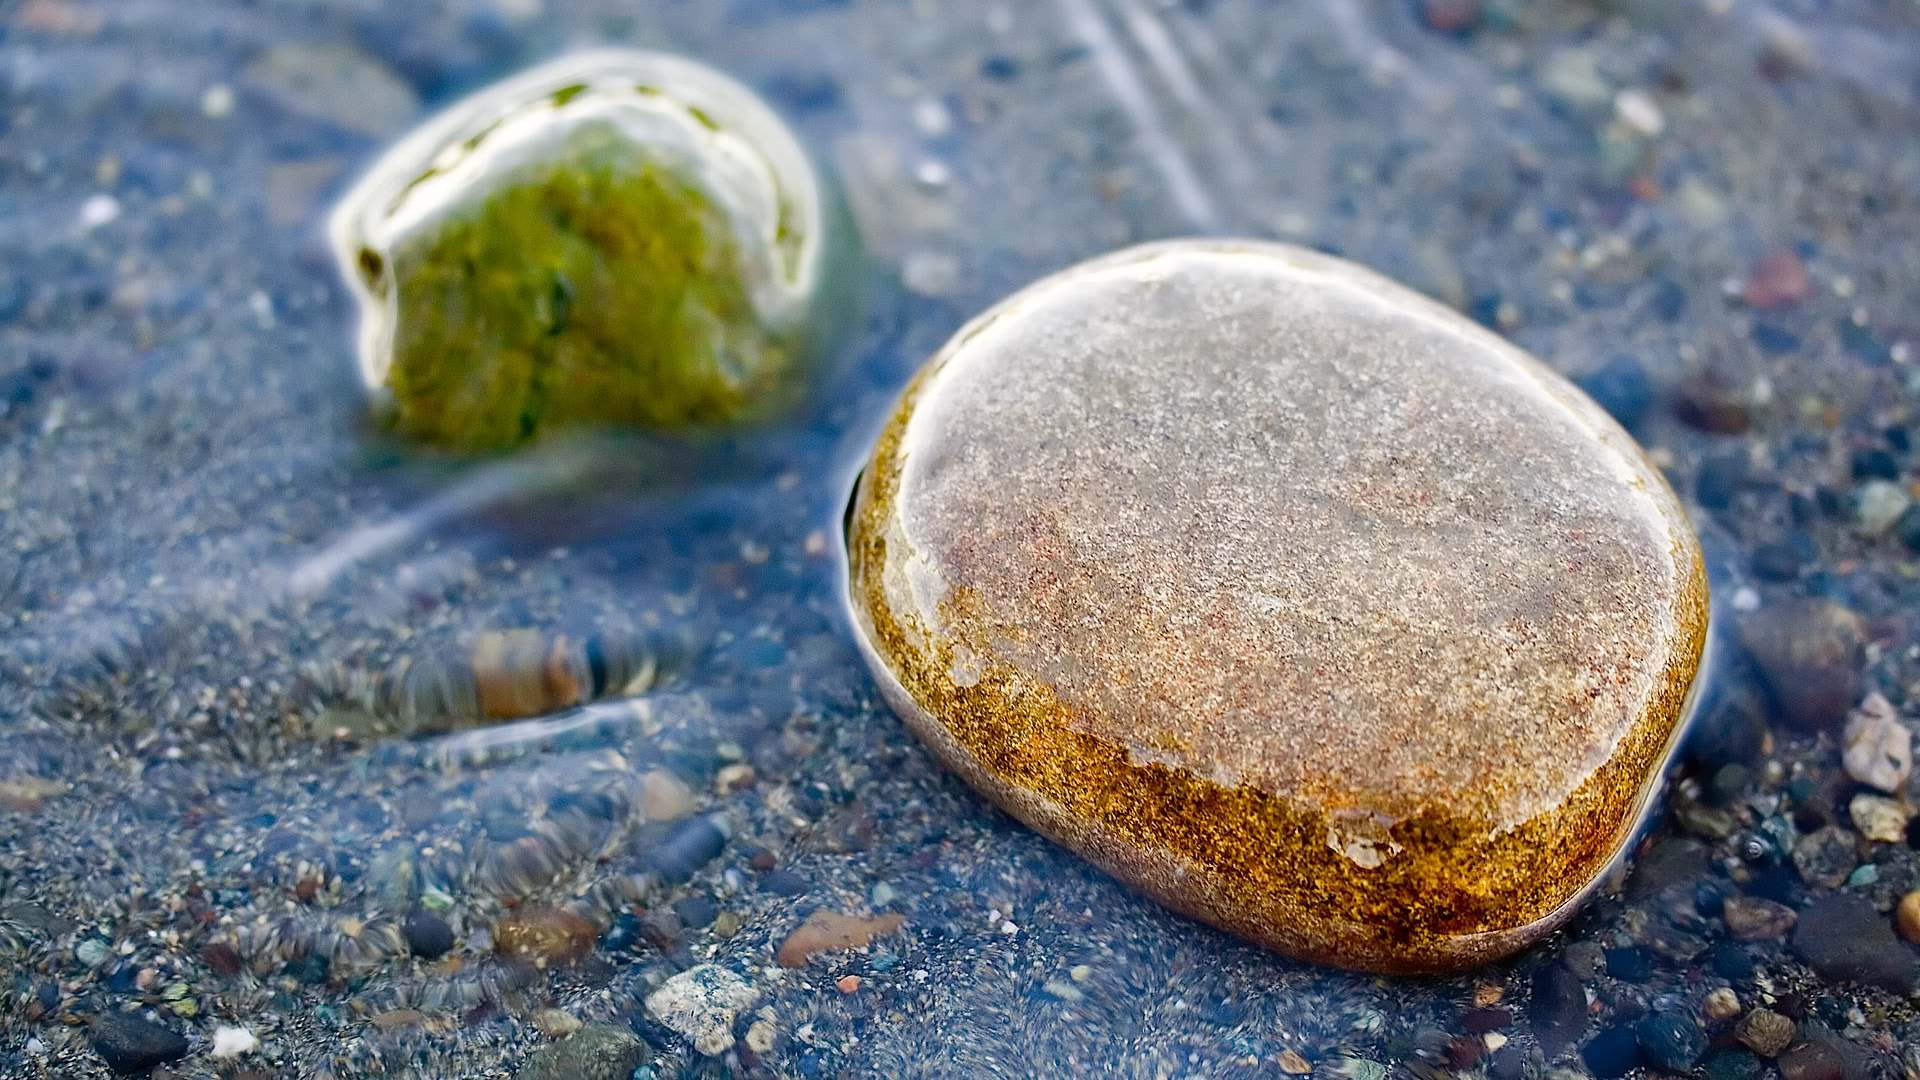 Smoothed River Rocks 1920x1080 HD Image Photography Nature 1920x1080